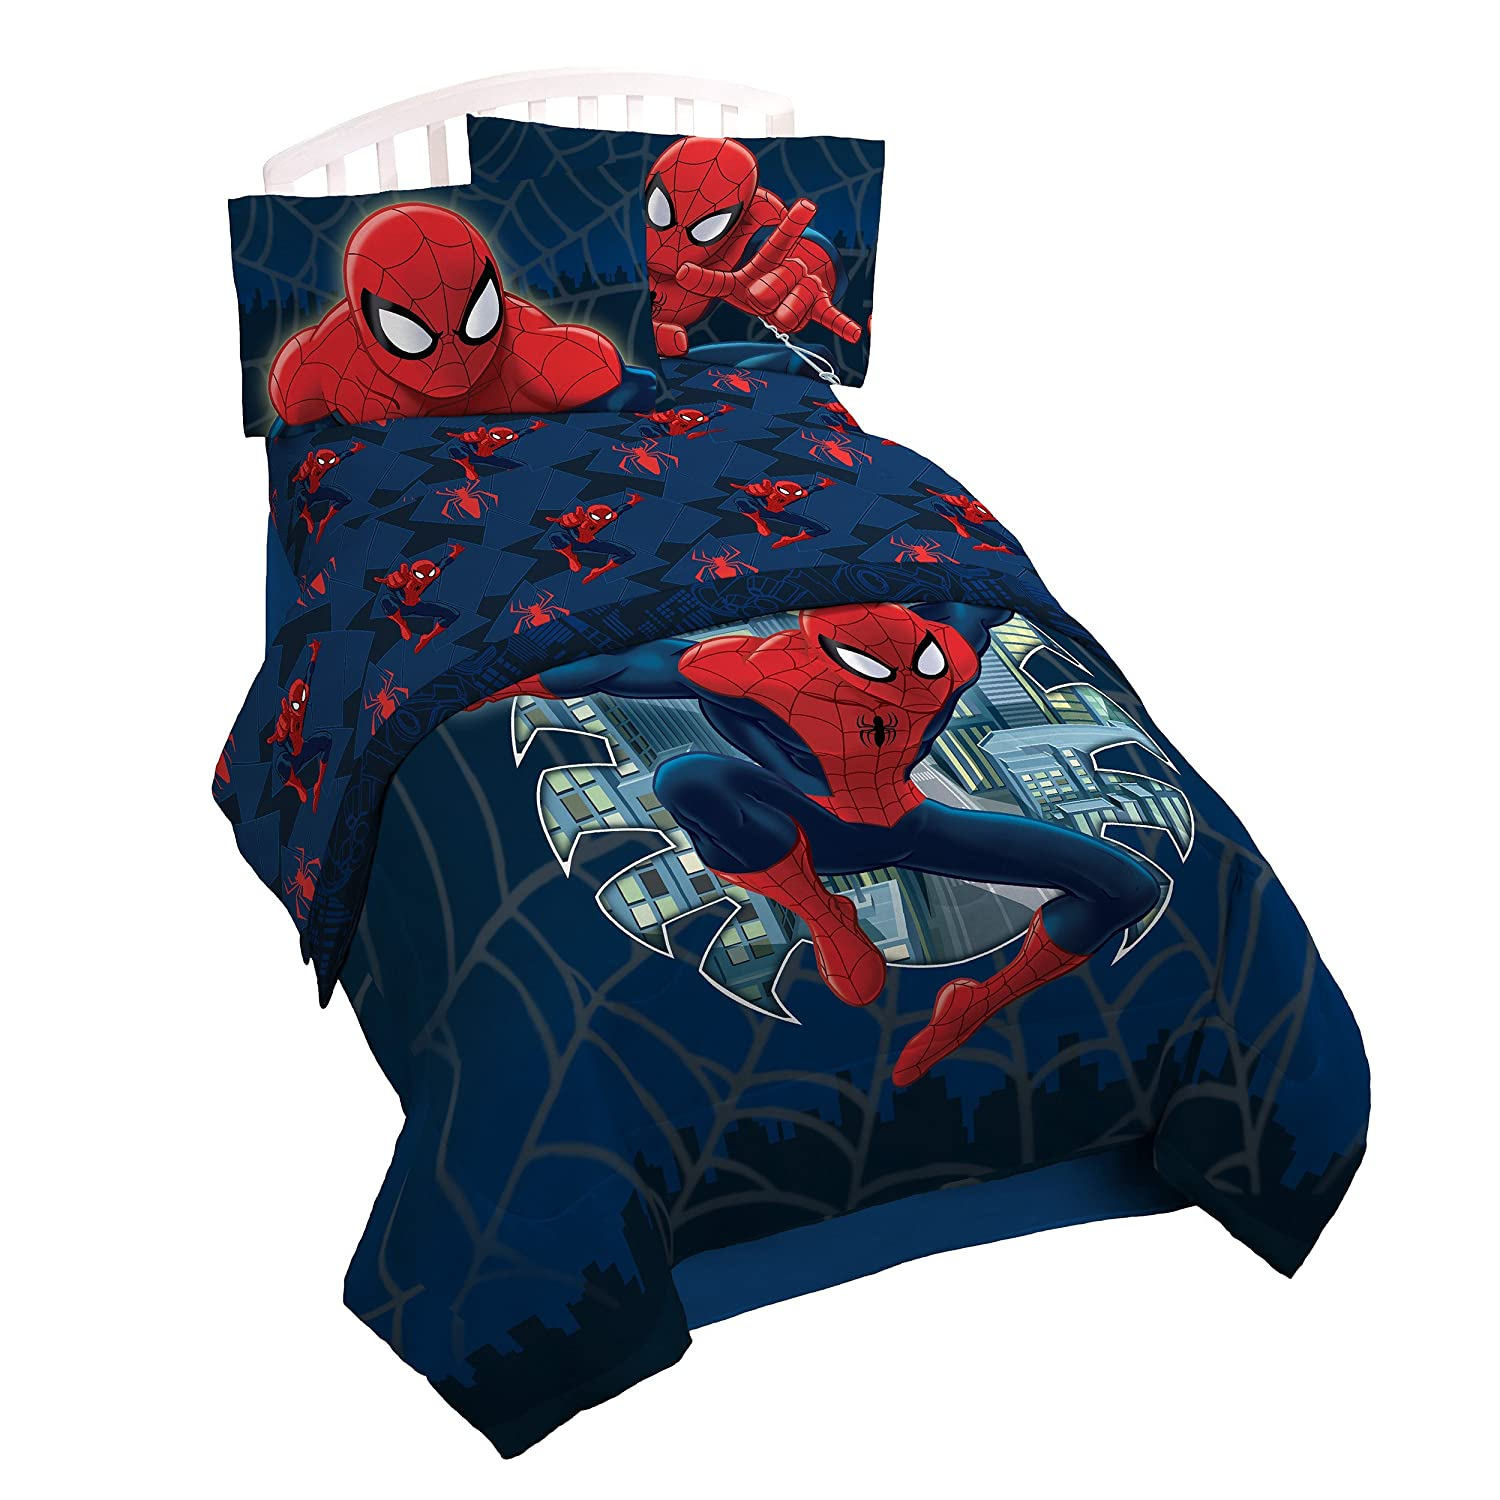 Spiderman and friends bedding - Amazon Com Marvel Spiderman Supreme Microfiber 3 Piece Twin Sheet Set Home Kitchen